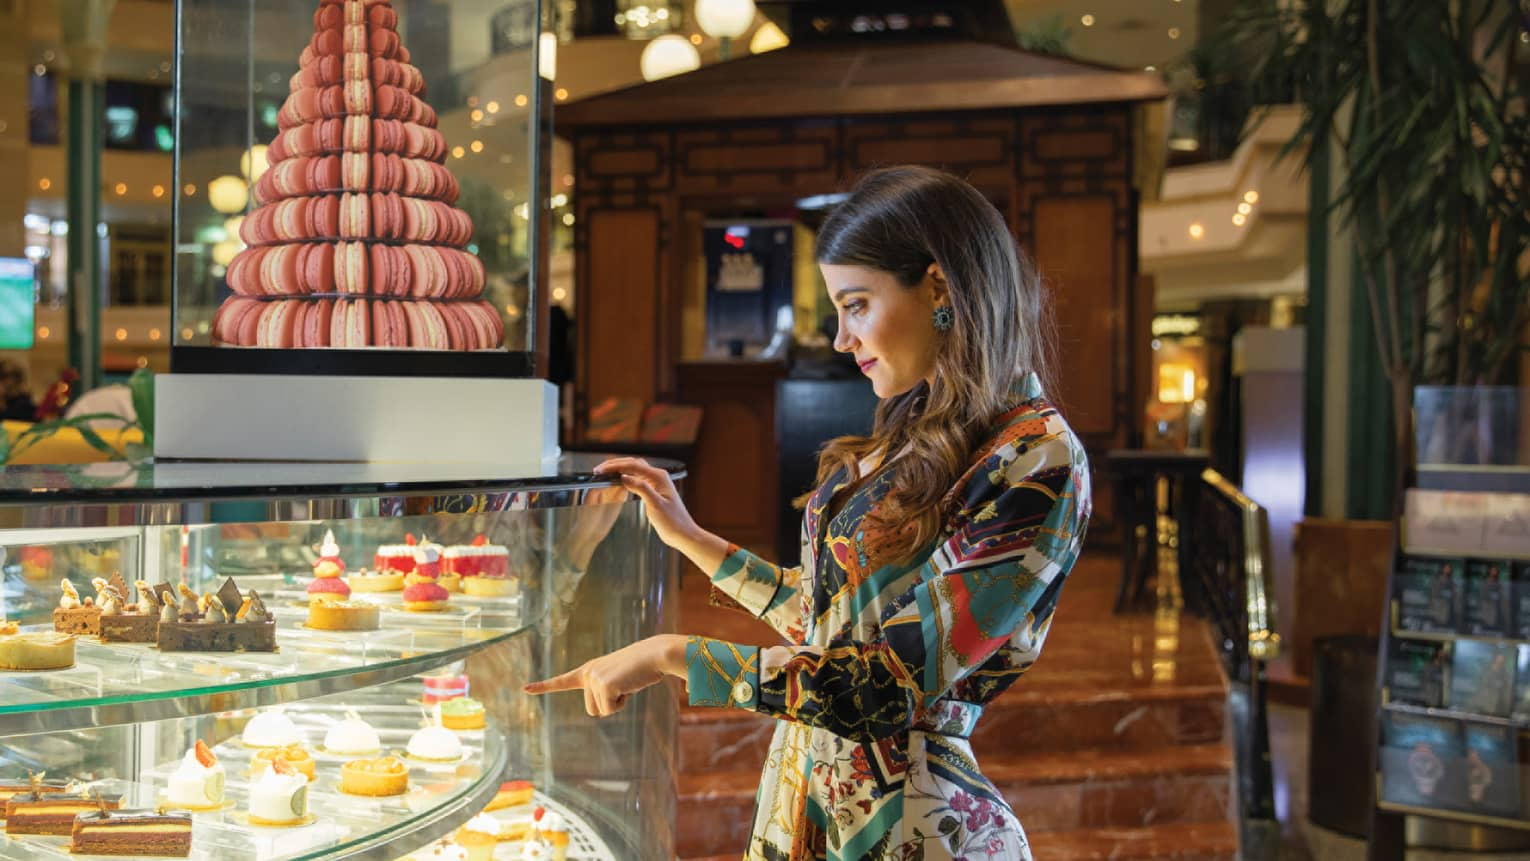 A woman points to a pastry within a glass container of sweets at La Gourmandise